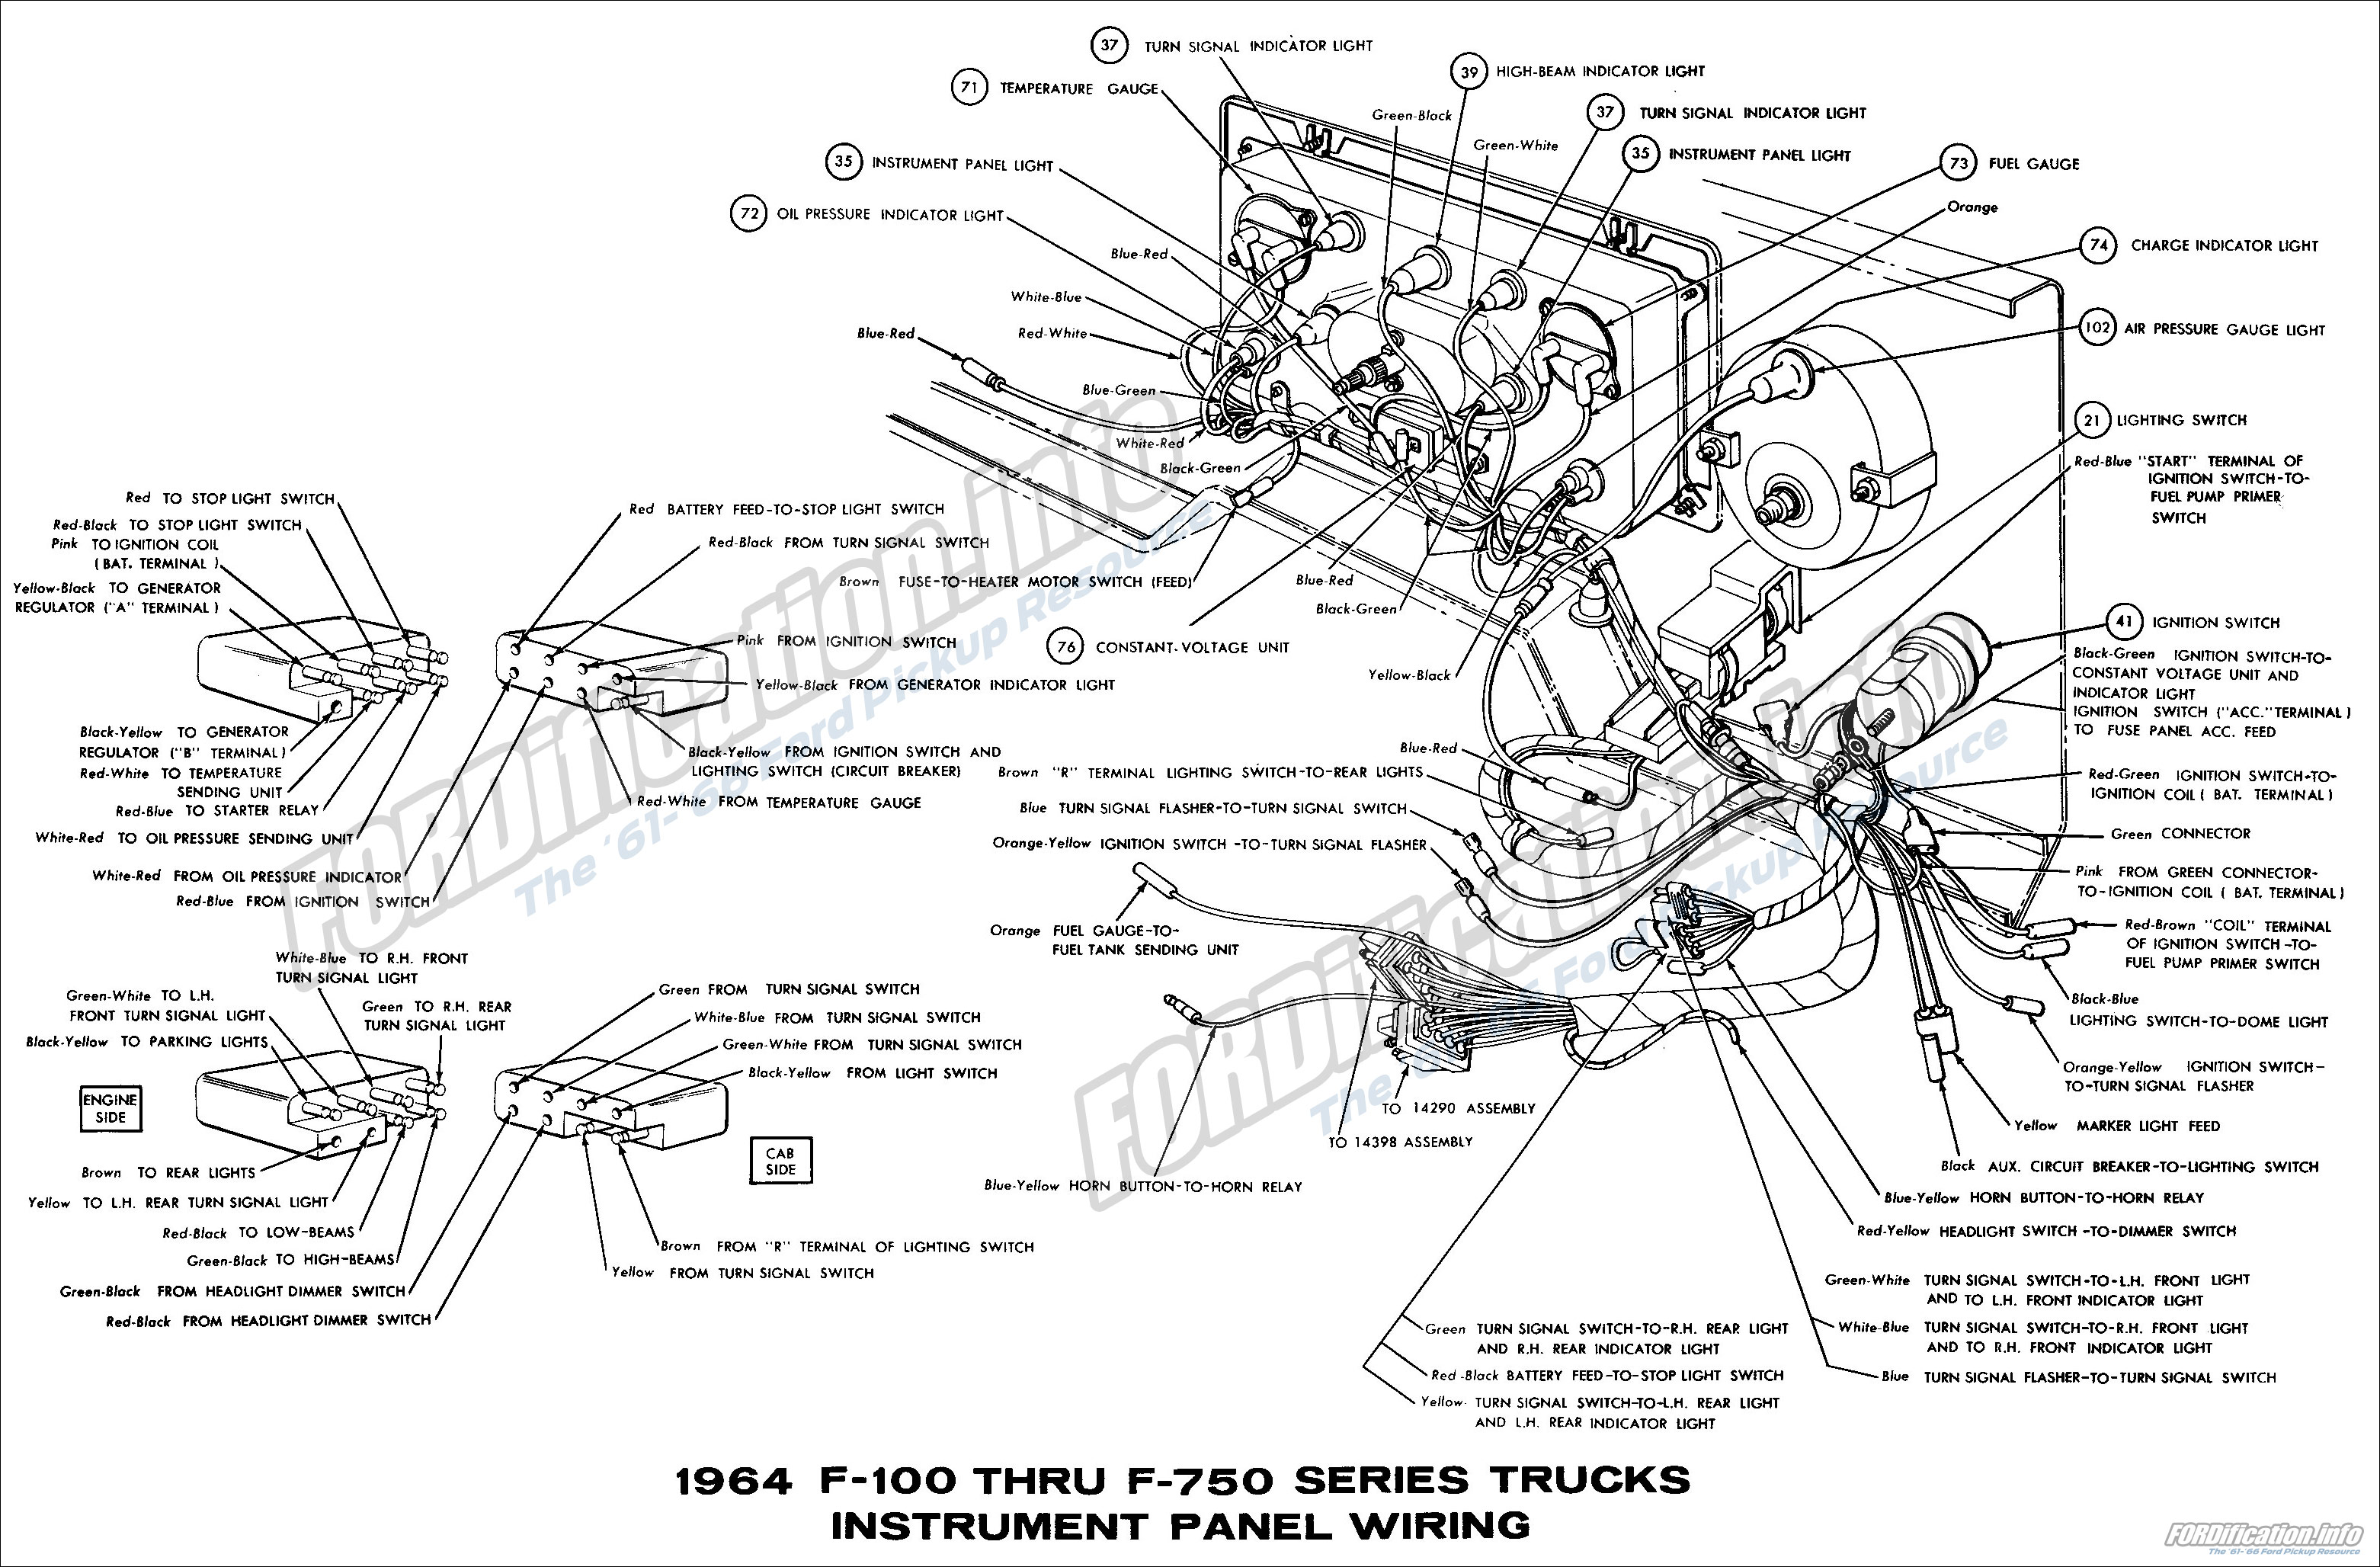 1964 Ford F100 Wiring Diagram Will Be A Thing 1968 Wiper Switch Truck Diagrams Fordification Info The 61 66 Rh